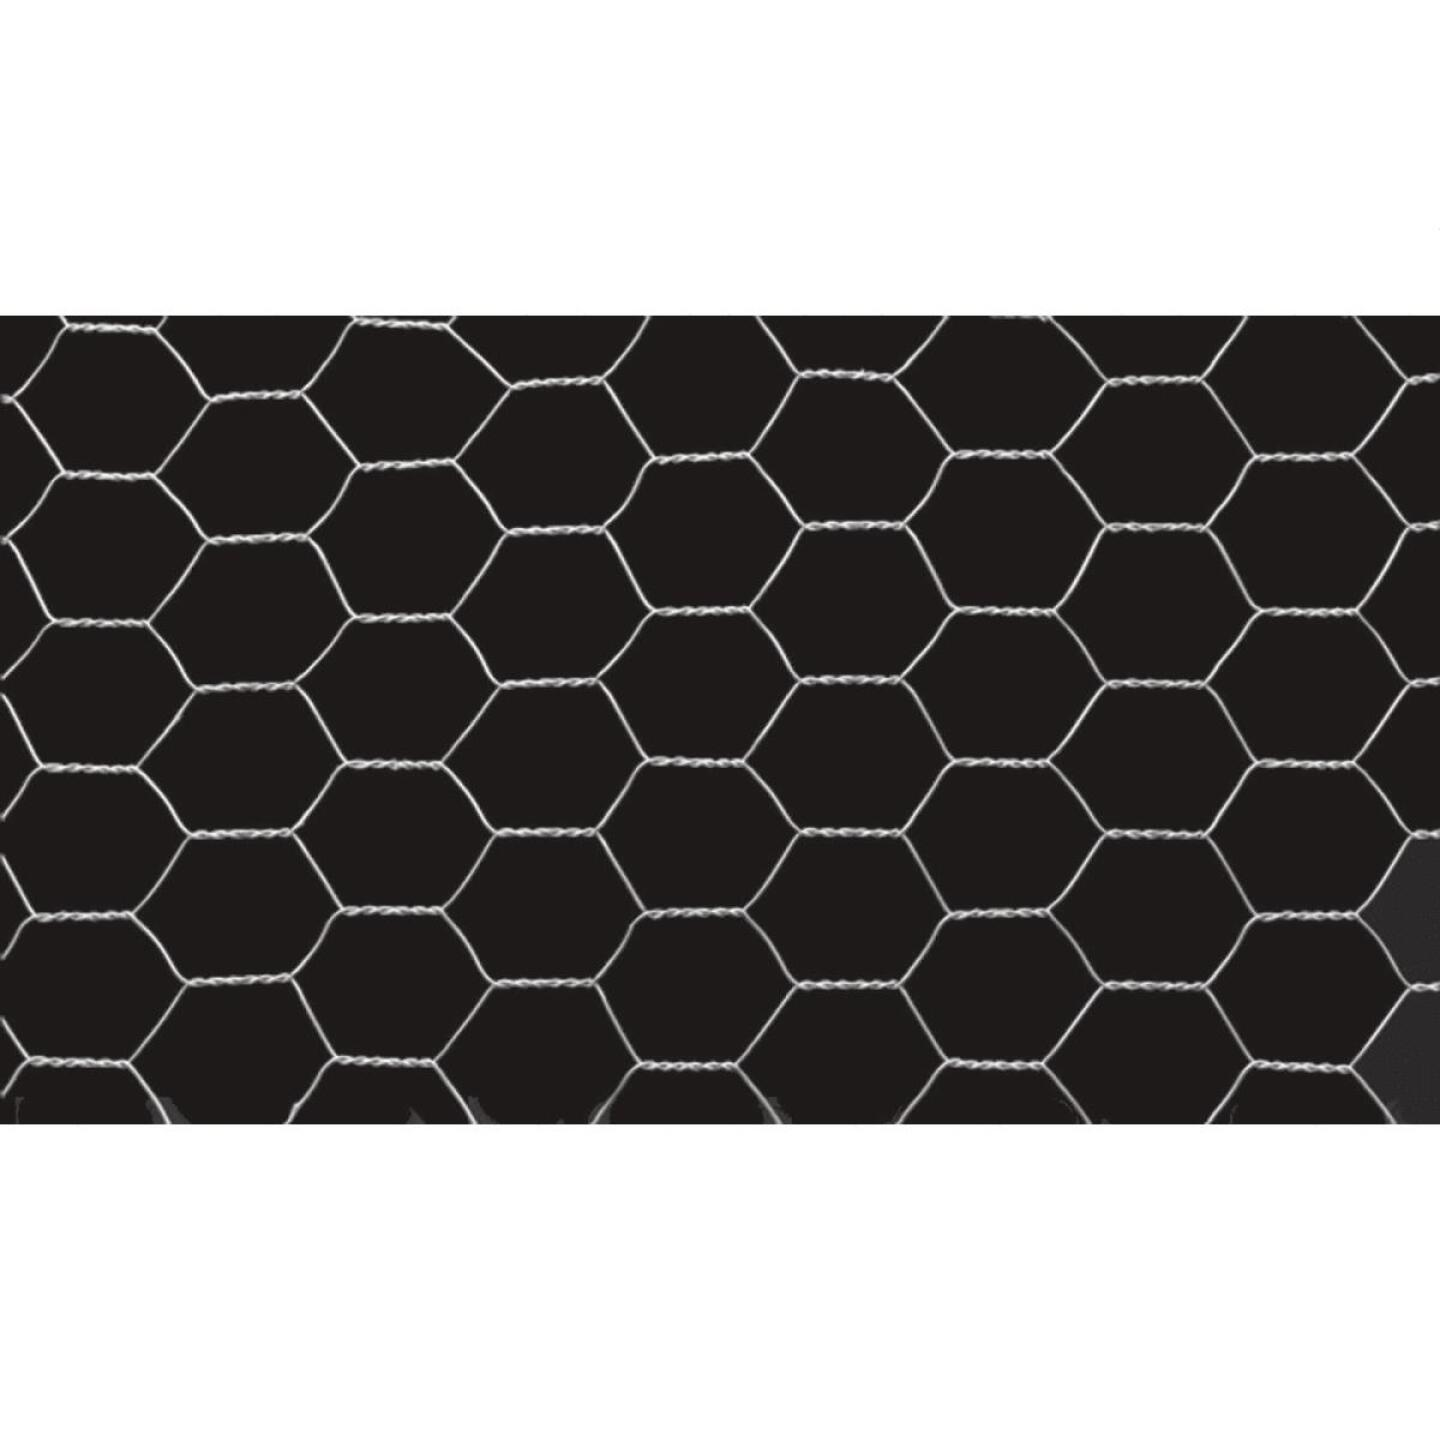 Do it 1 In. x 48 In. H. x 25 Ft. L. Hexagonal Wire Poultry Netting Image 2